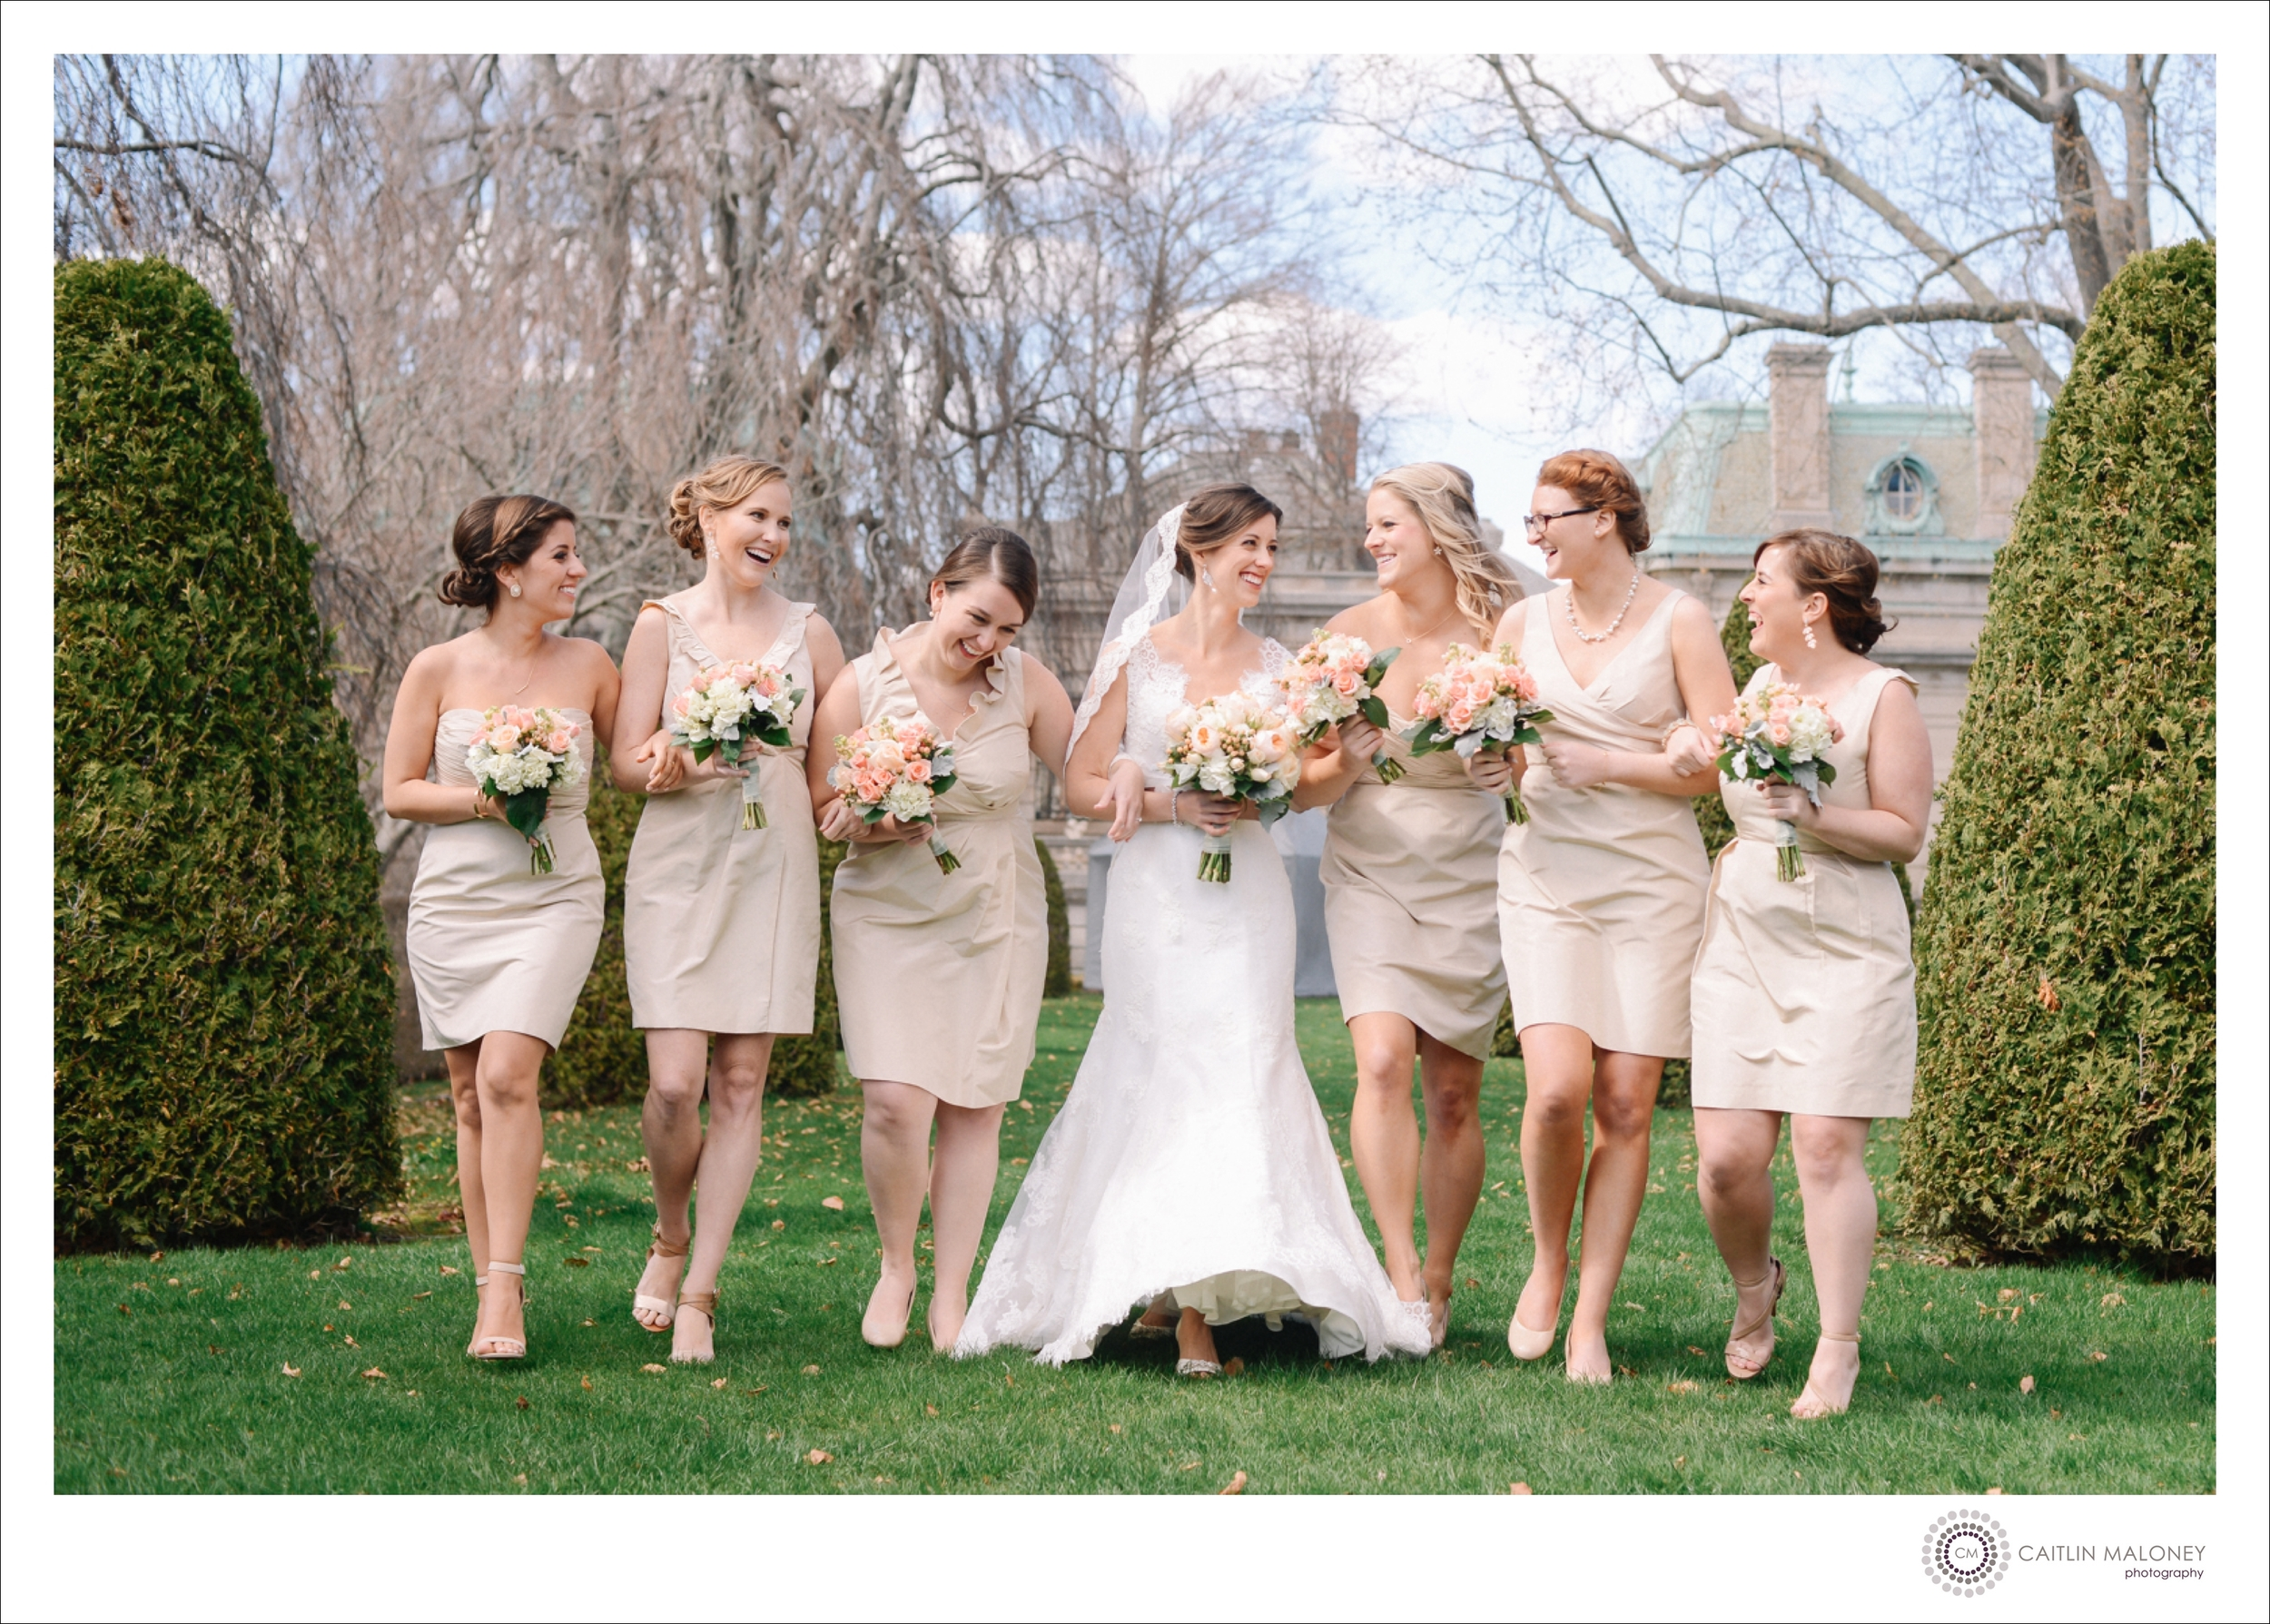 Lansing_MI_Wedding_Photographer_021.jpg